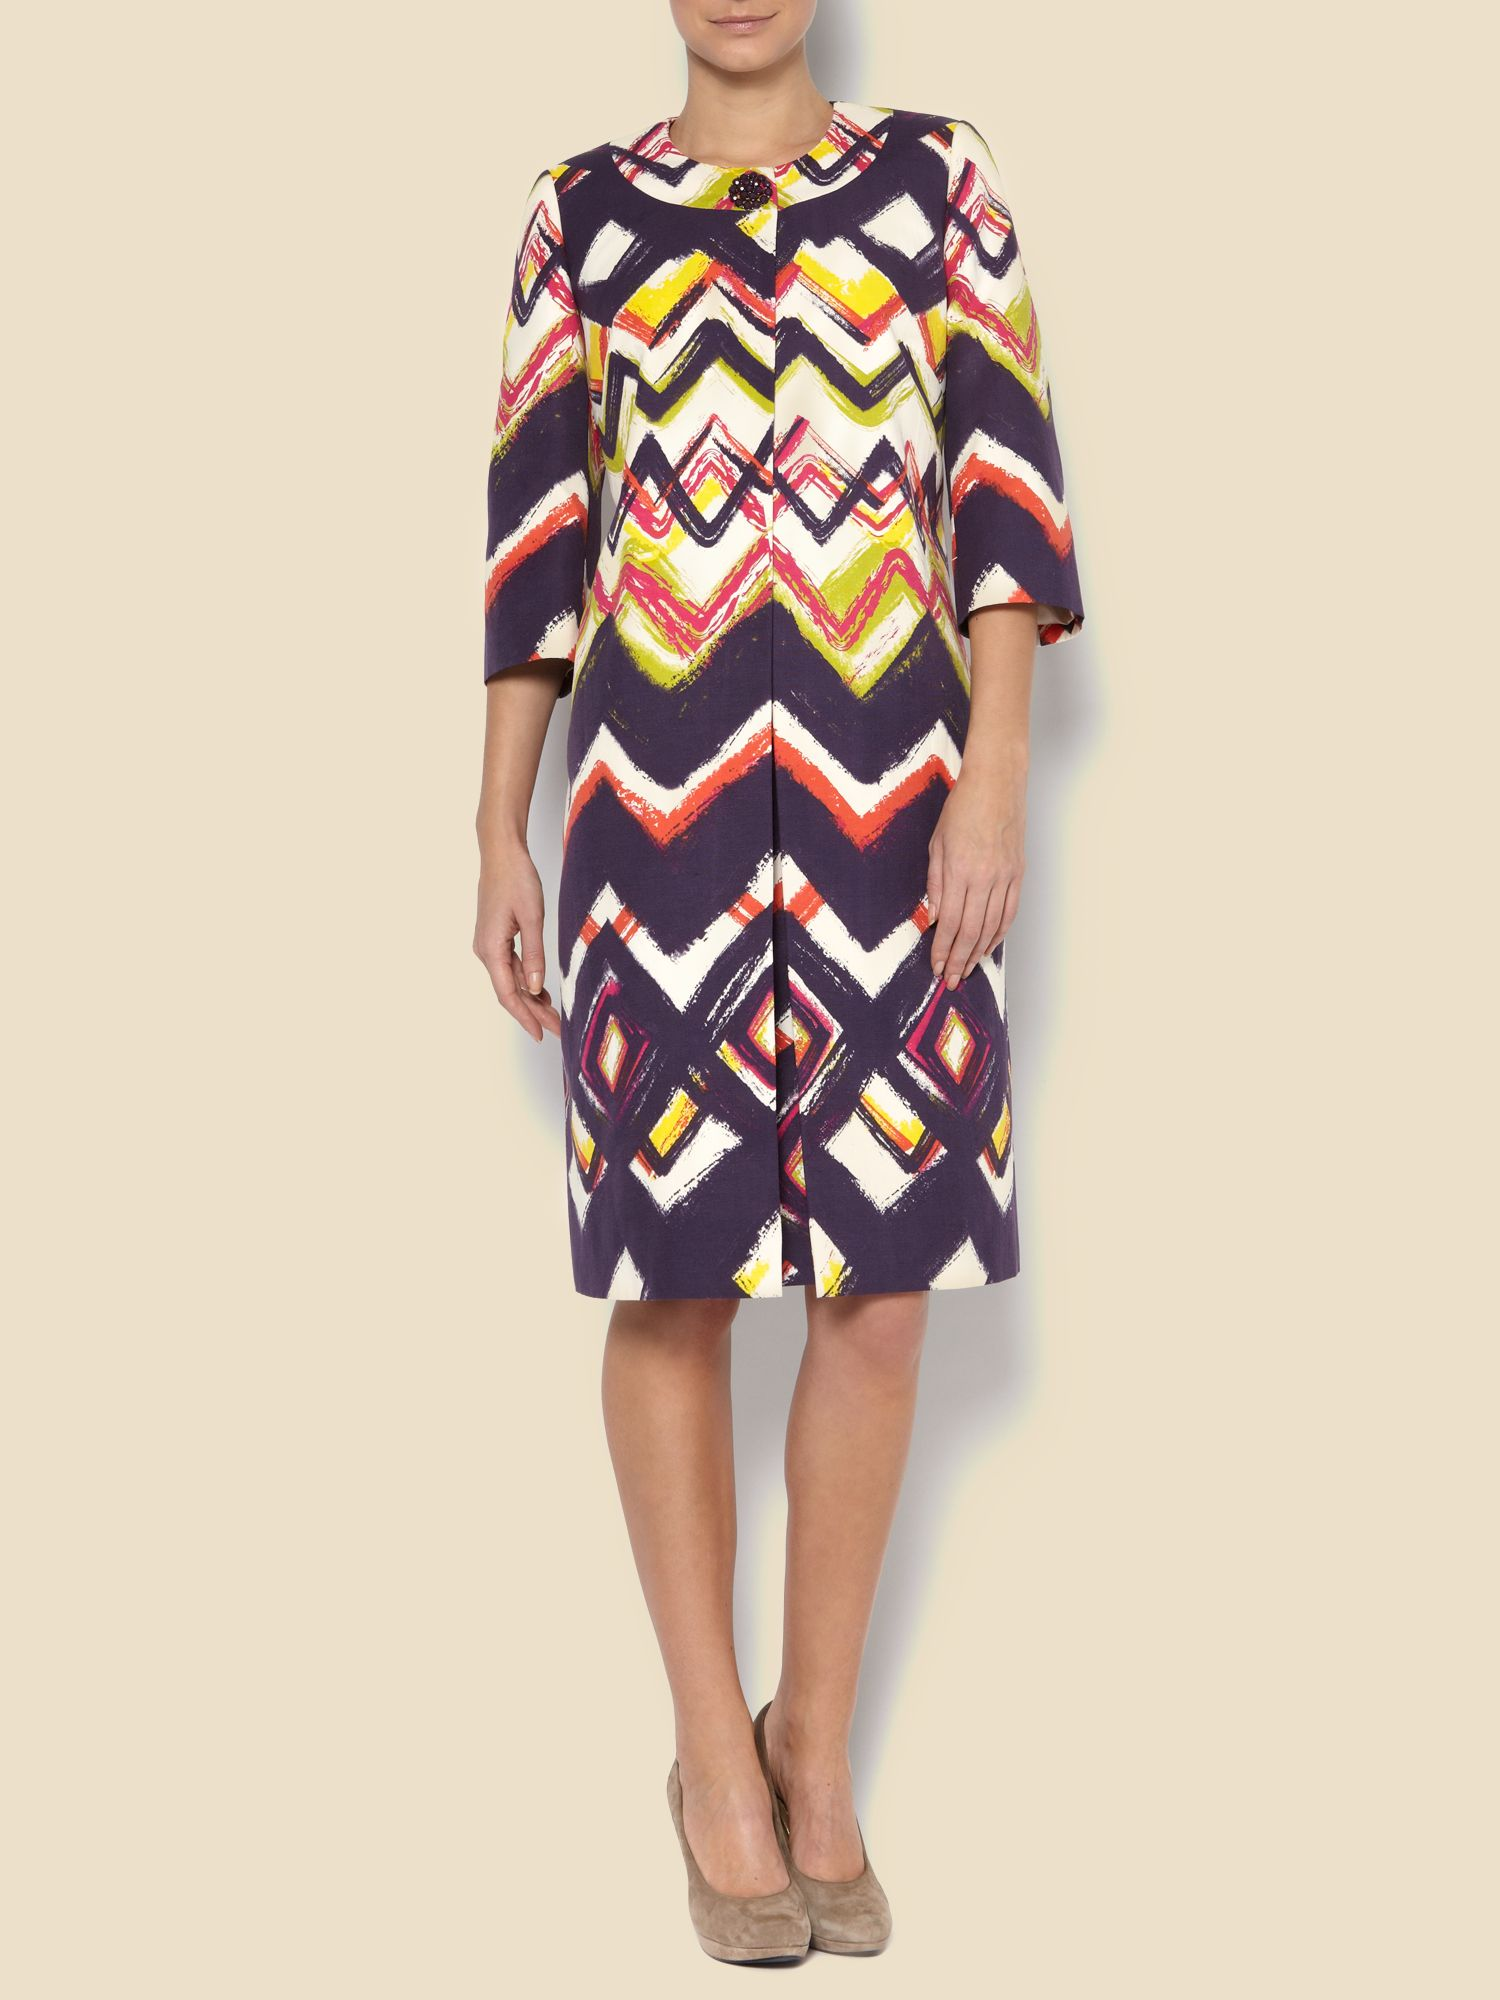 Zig zag dress coat